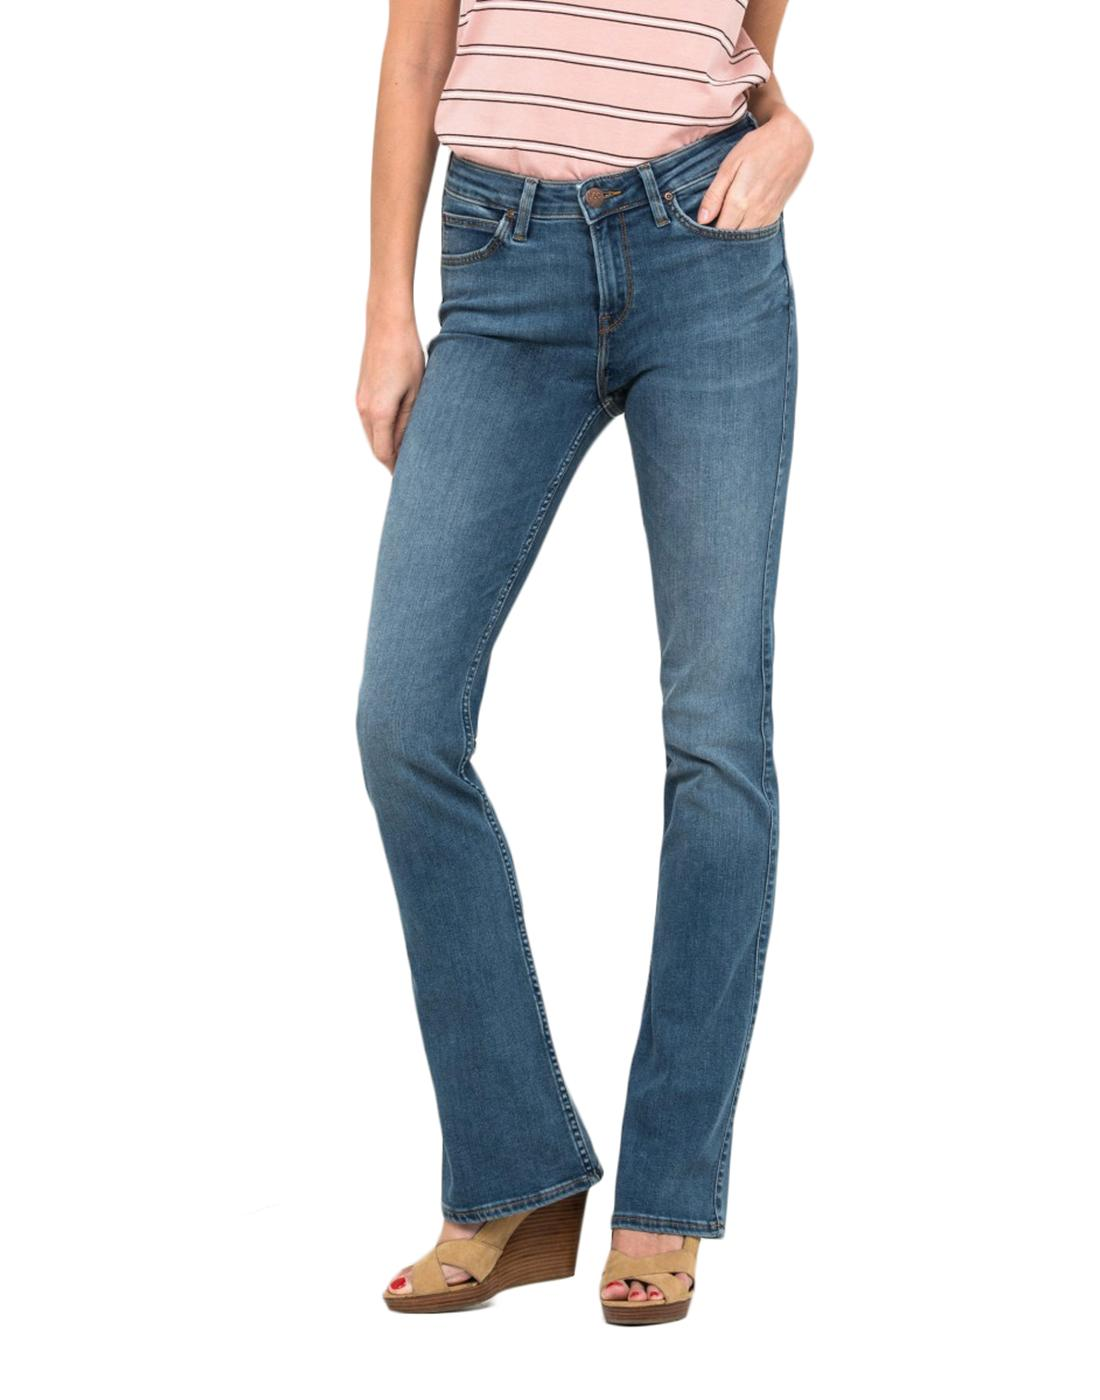 Hoxie LEE JEANS Womens Retro 70s Bootcut Jeans